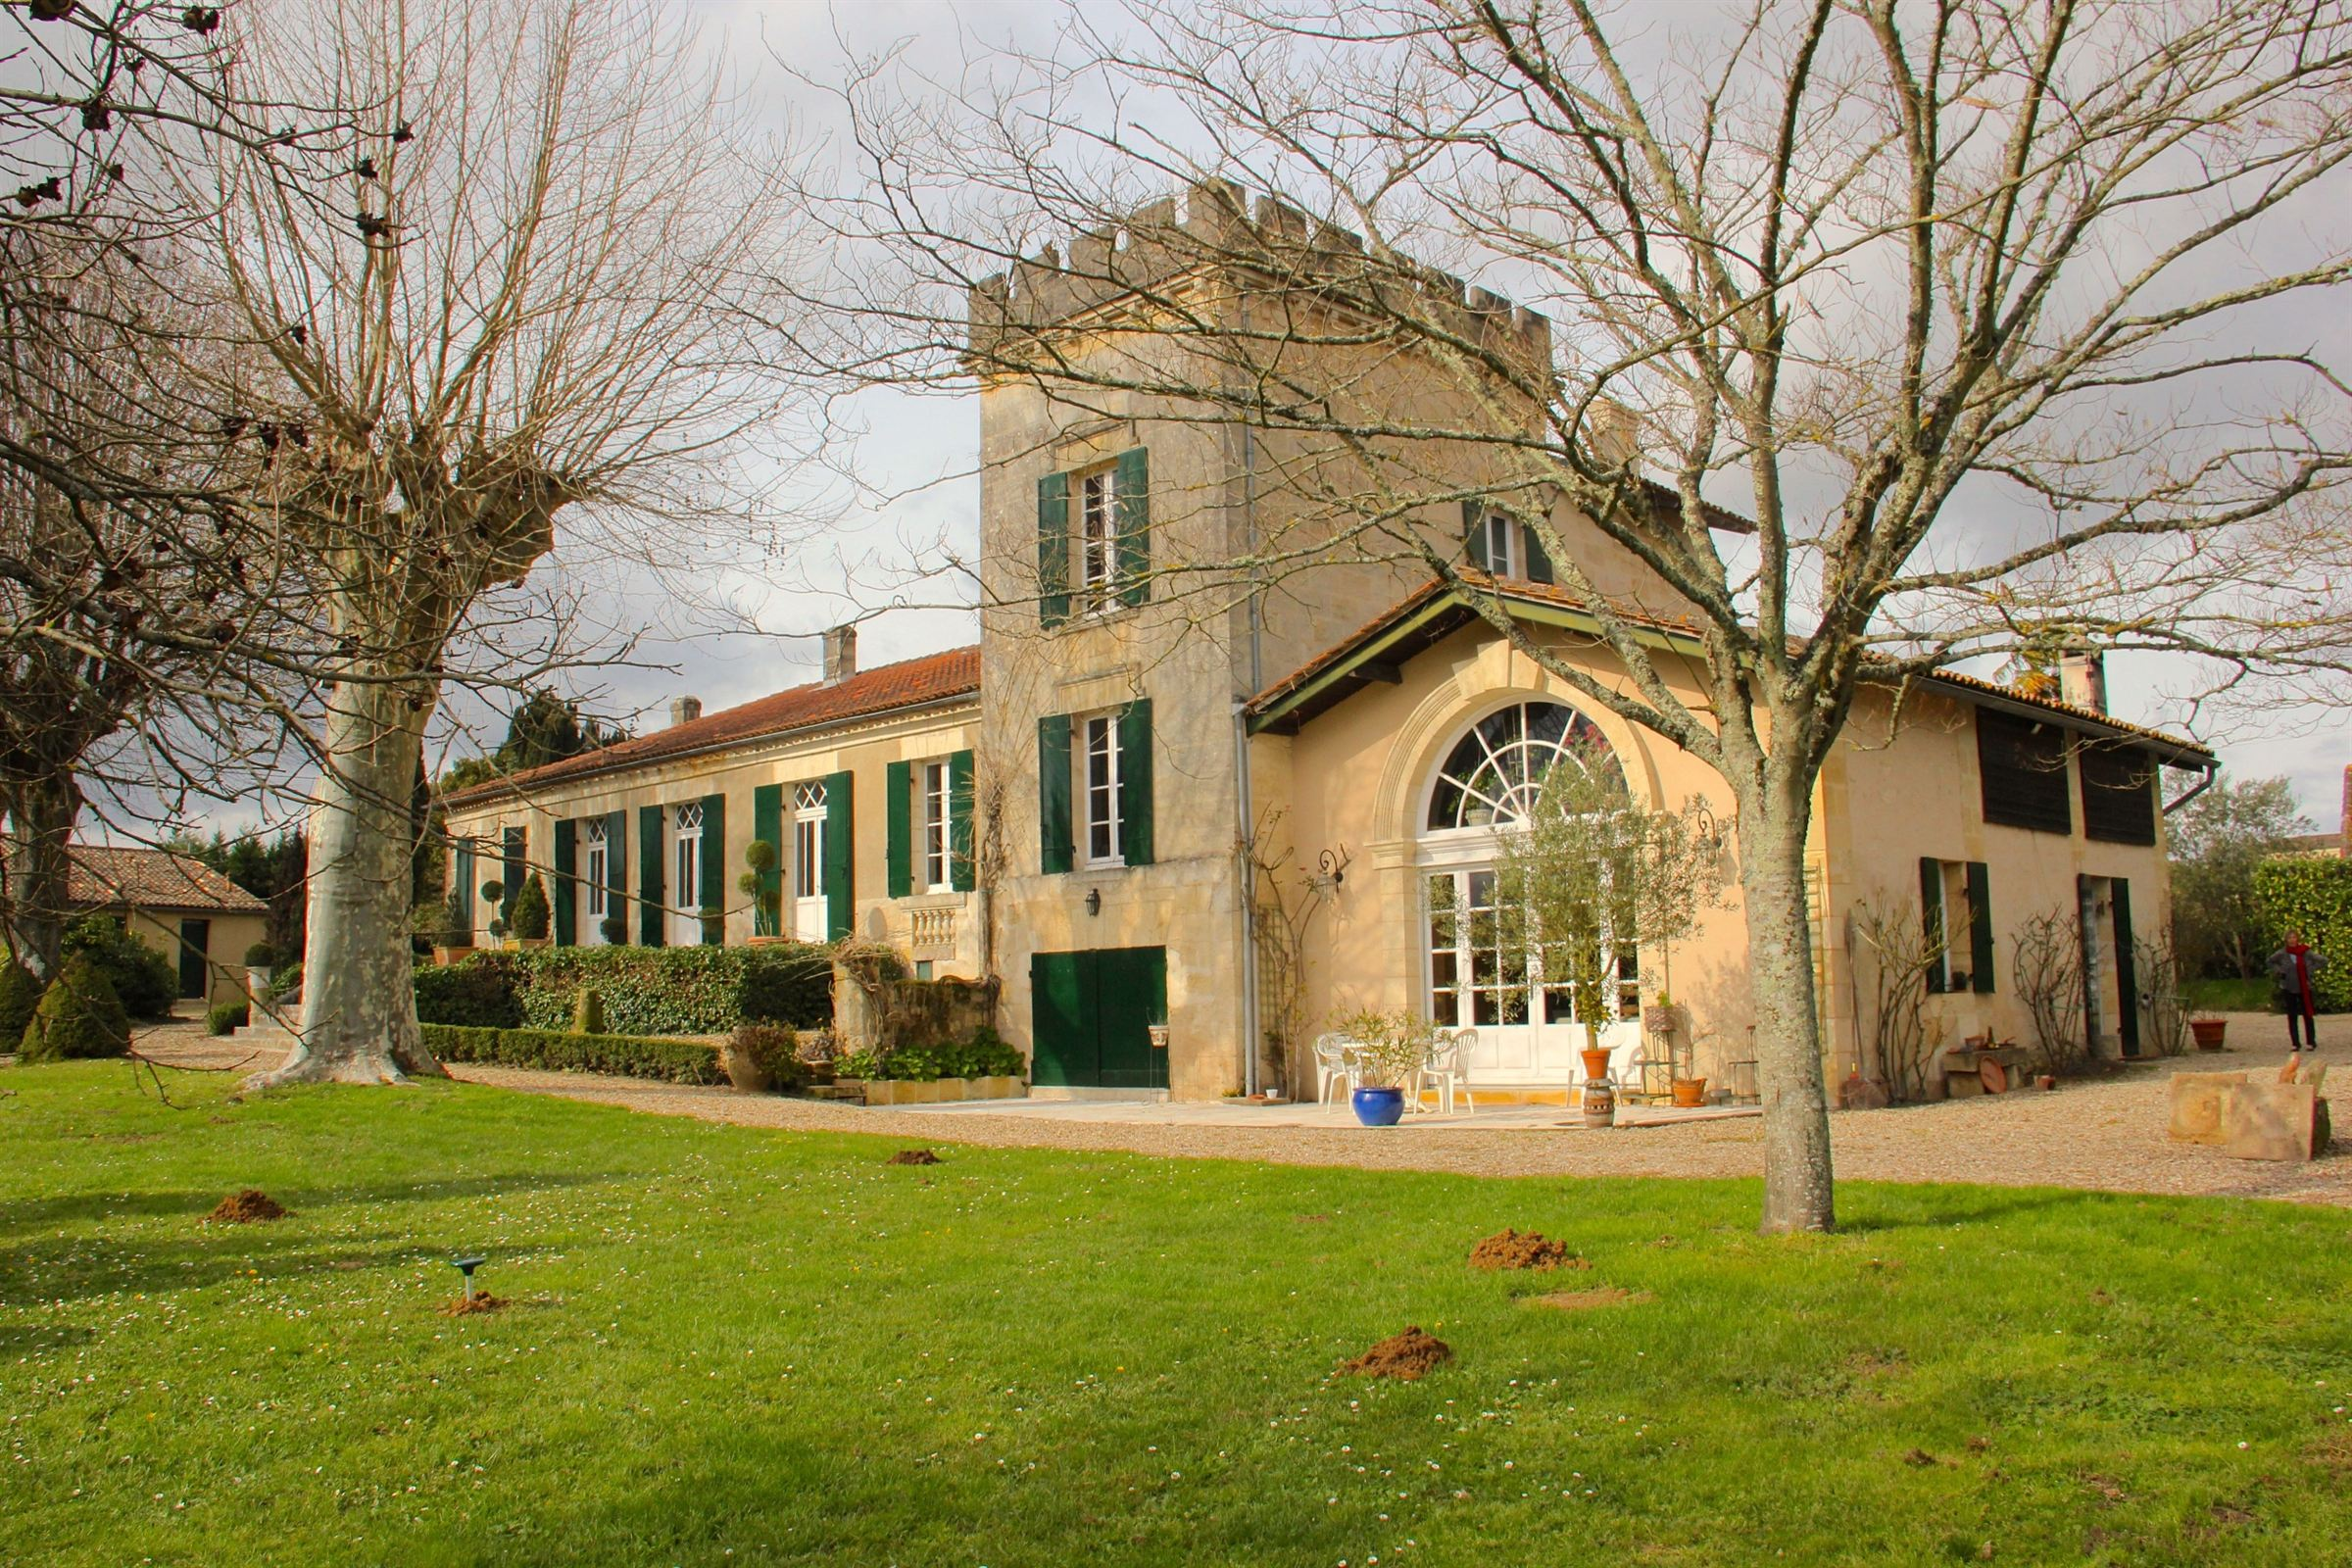 Single Family Home for Sale at BORDEAUX 40MN - 18th CENTURY MANOR OF CHARACTER Bordeaux, Aquitaine, 33000 France